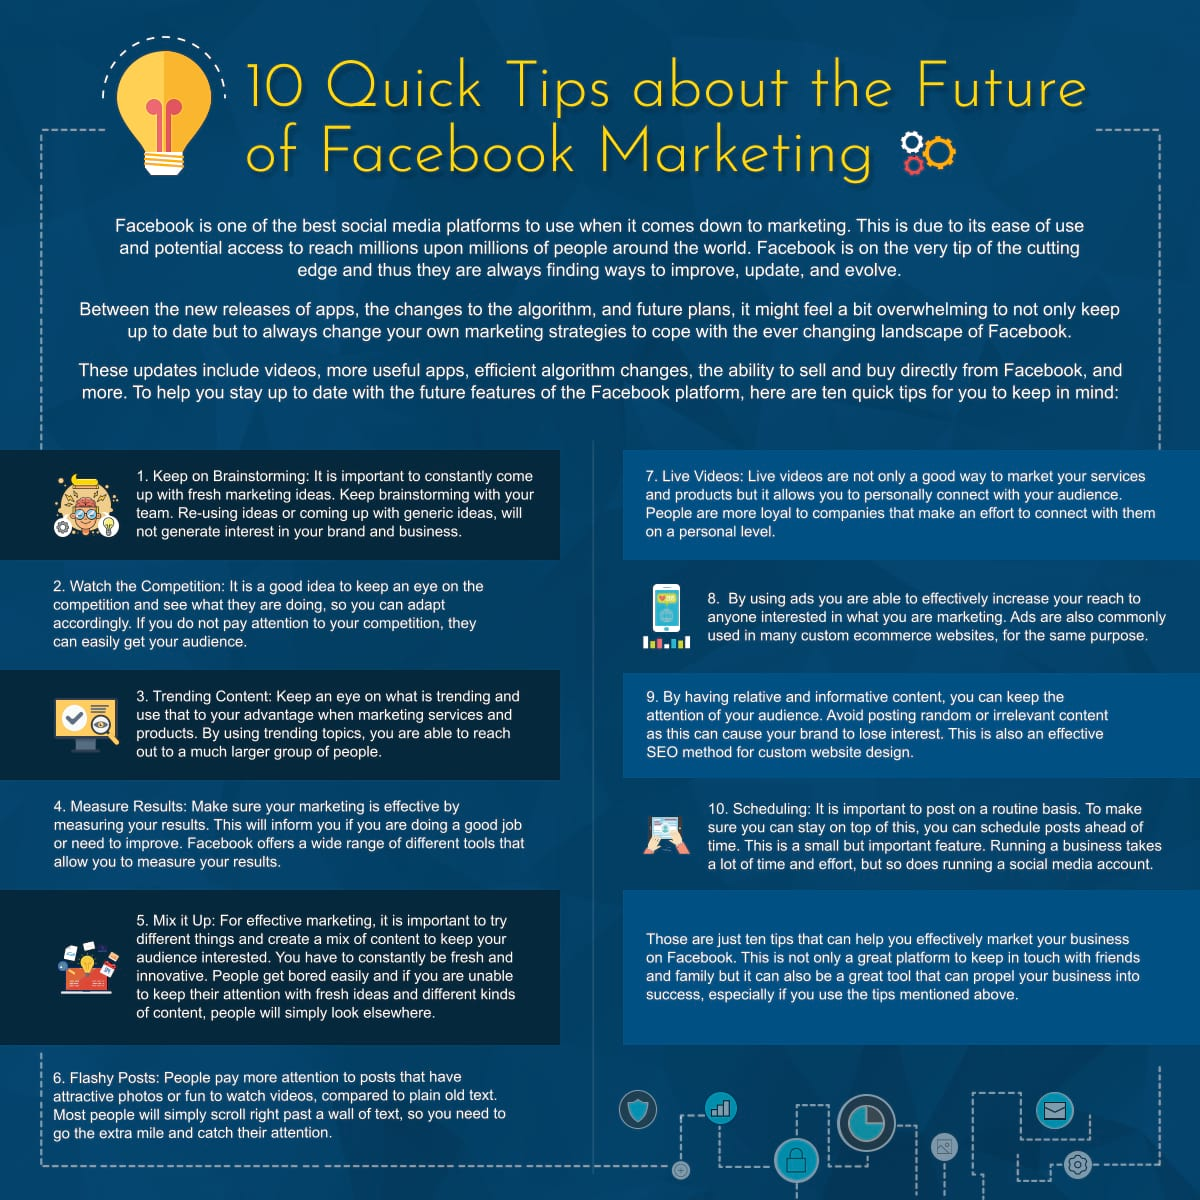 10 Quick Tips about the Future of Facebook Marketing